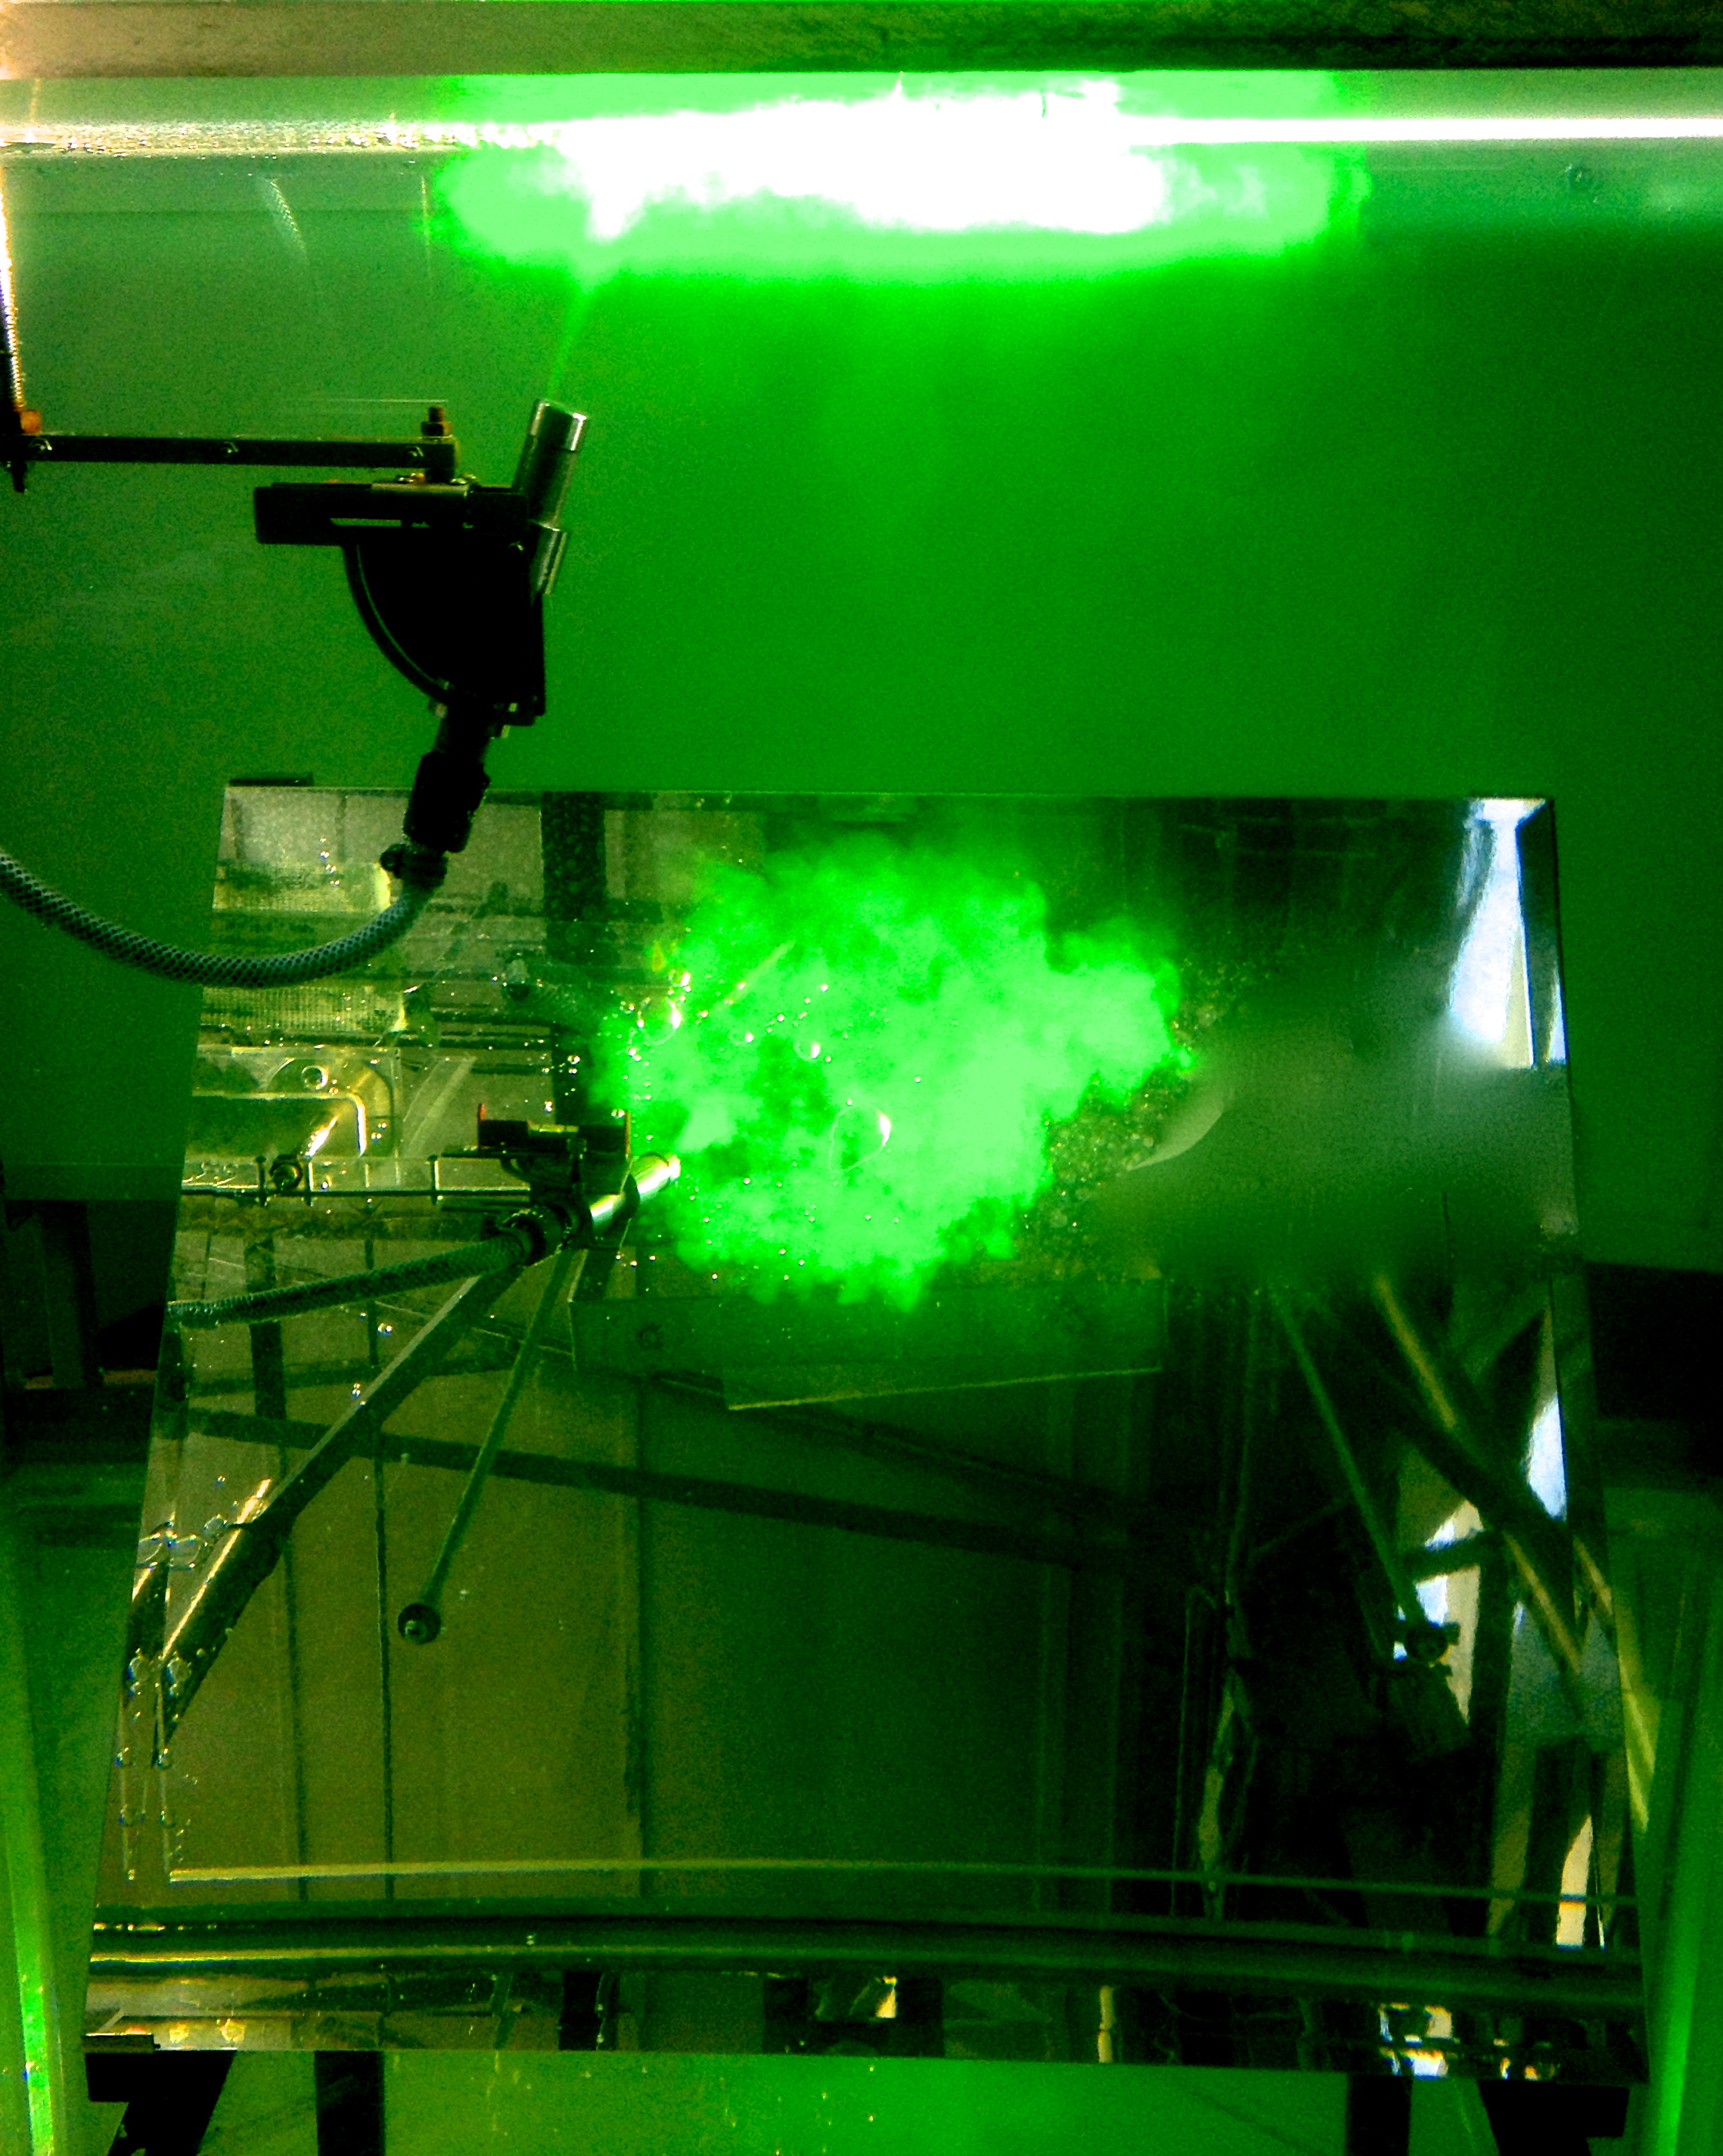 Photo of a 'salt bath' experiment, showing a jet of dyed saline hitting a surface, modelling a fan heater directed downwards towards the floor. Planar Light-Induced Fluorescence (PLIF) using a light sheet and fluorescein dye has been used to visualise the flow.